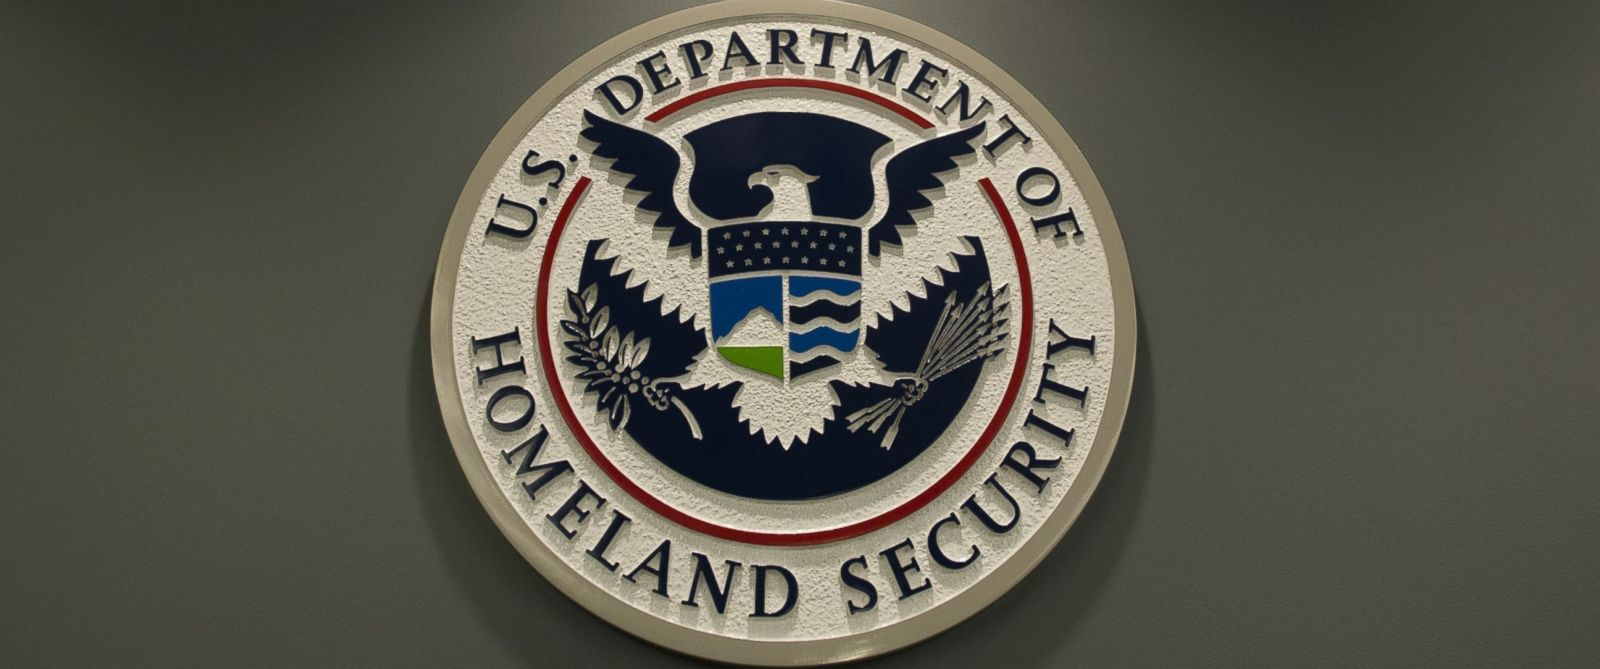 PHOTO: The logo of the Department of Homeland Security is seen at US Immigration and Customs Enforcement in Washington on Feb. 25, 2015.